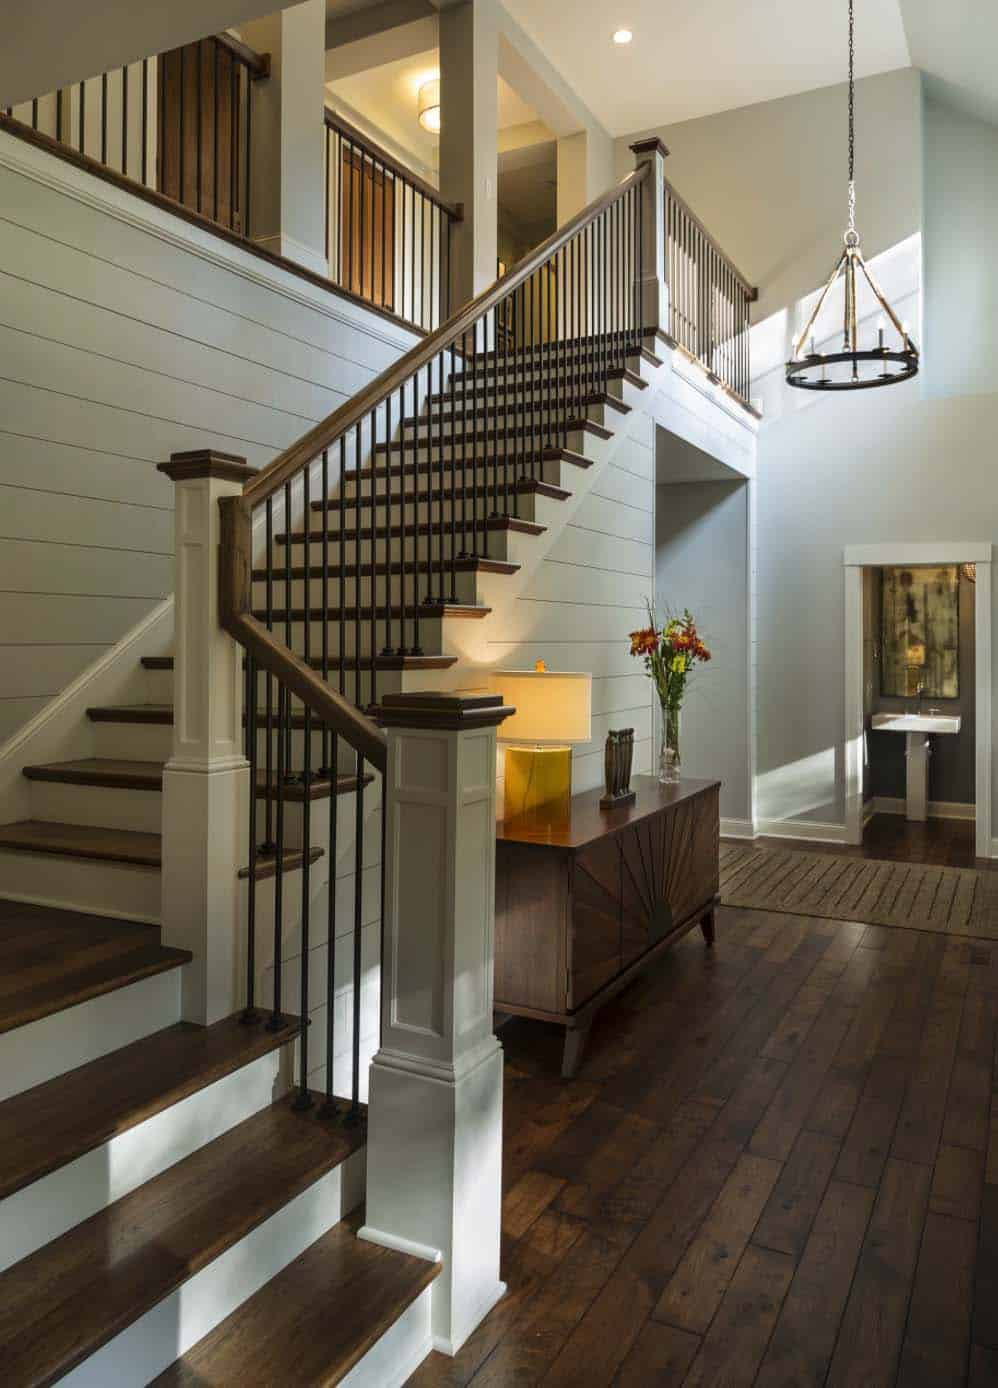 Shiplap Wall Ideas Home-14-1 Kindesign